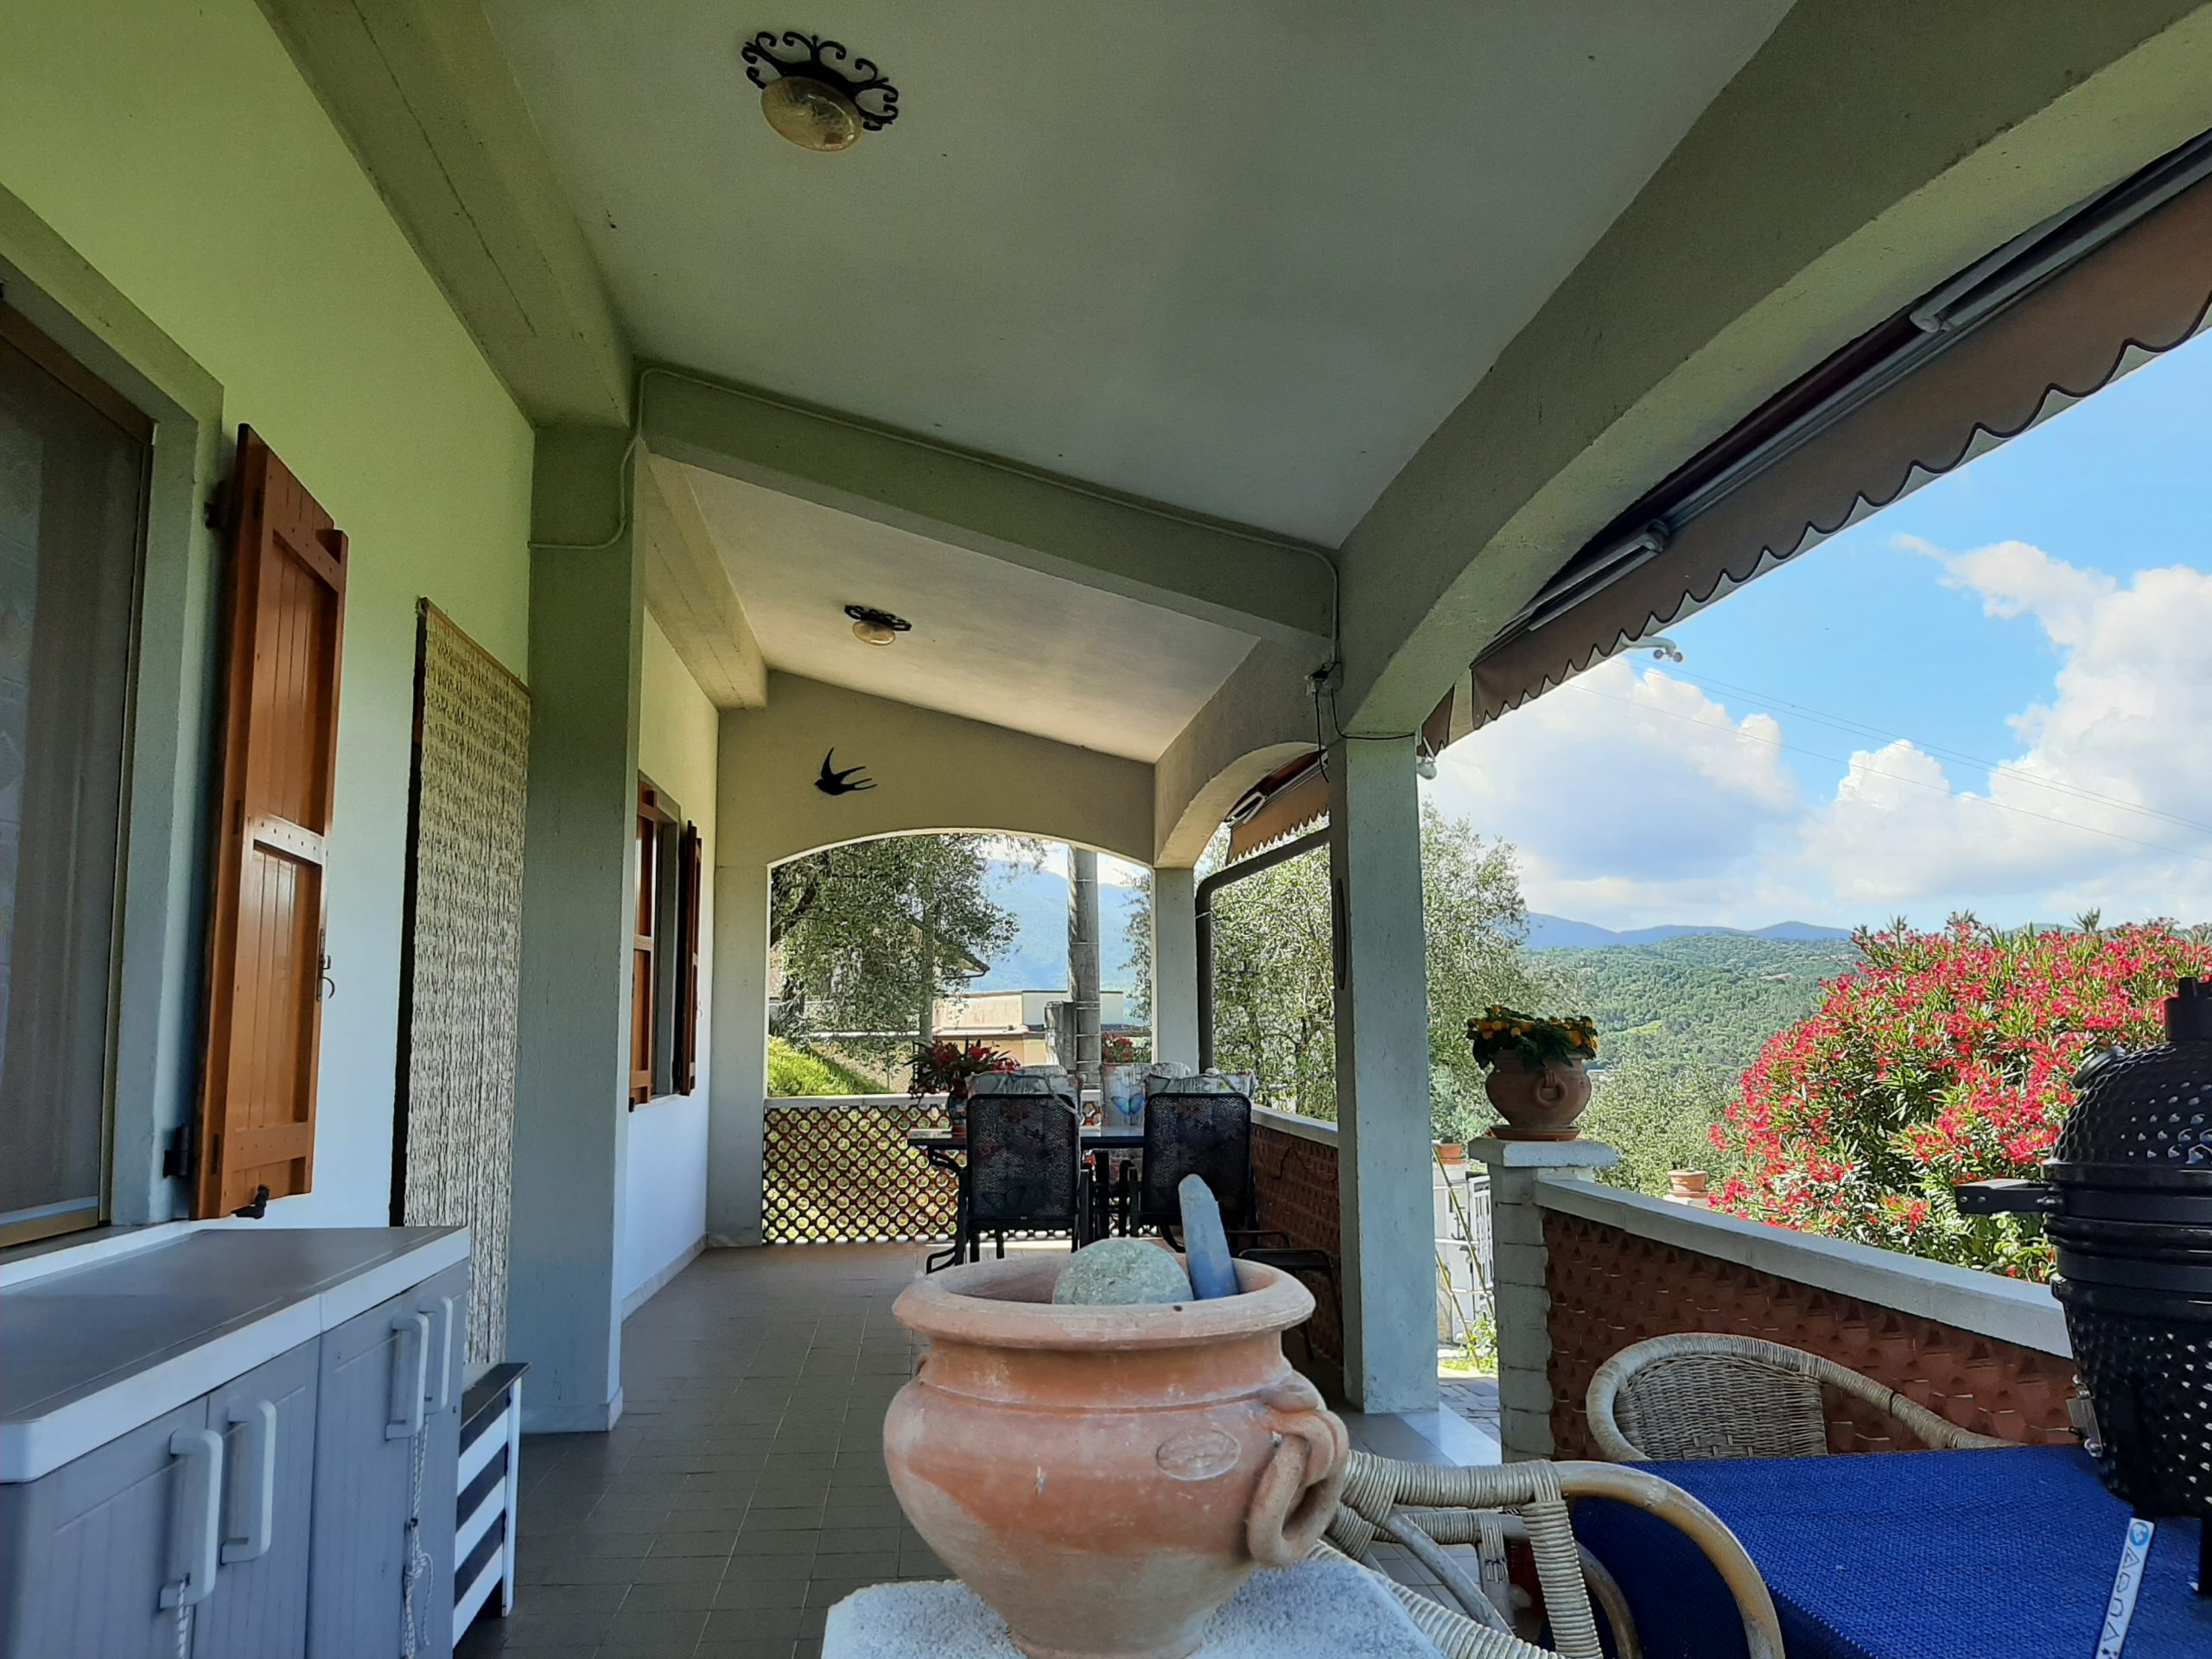 Independent panoramic Villa in Lunigiana – Tuscany at an excellent price. ref. 2428